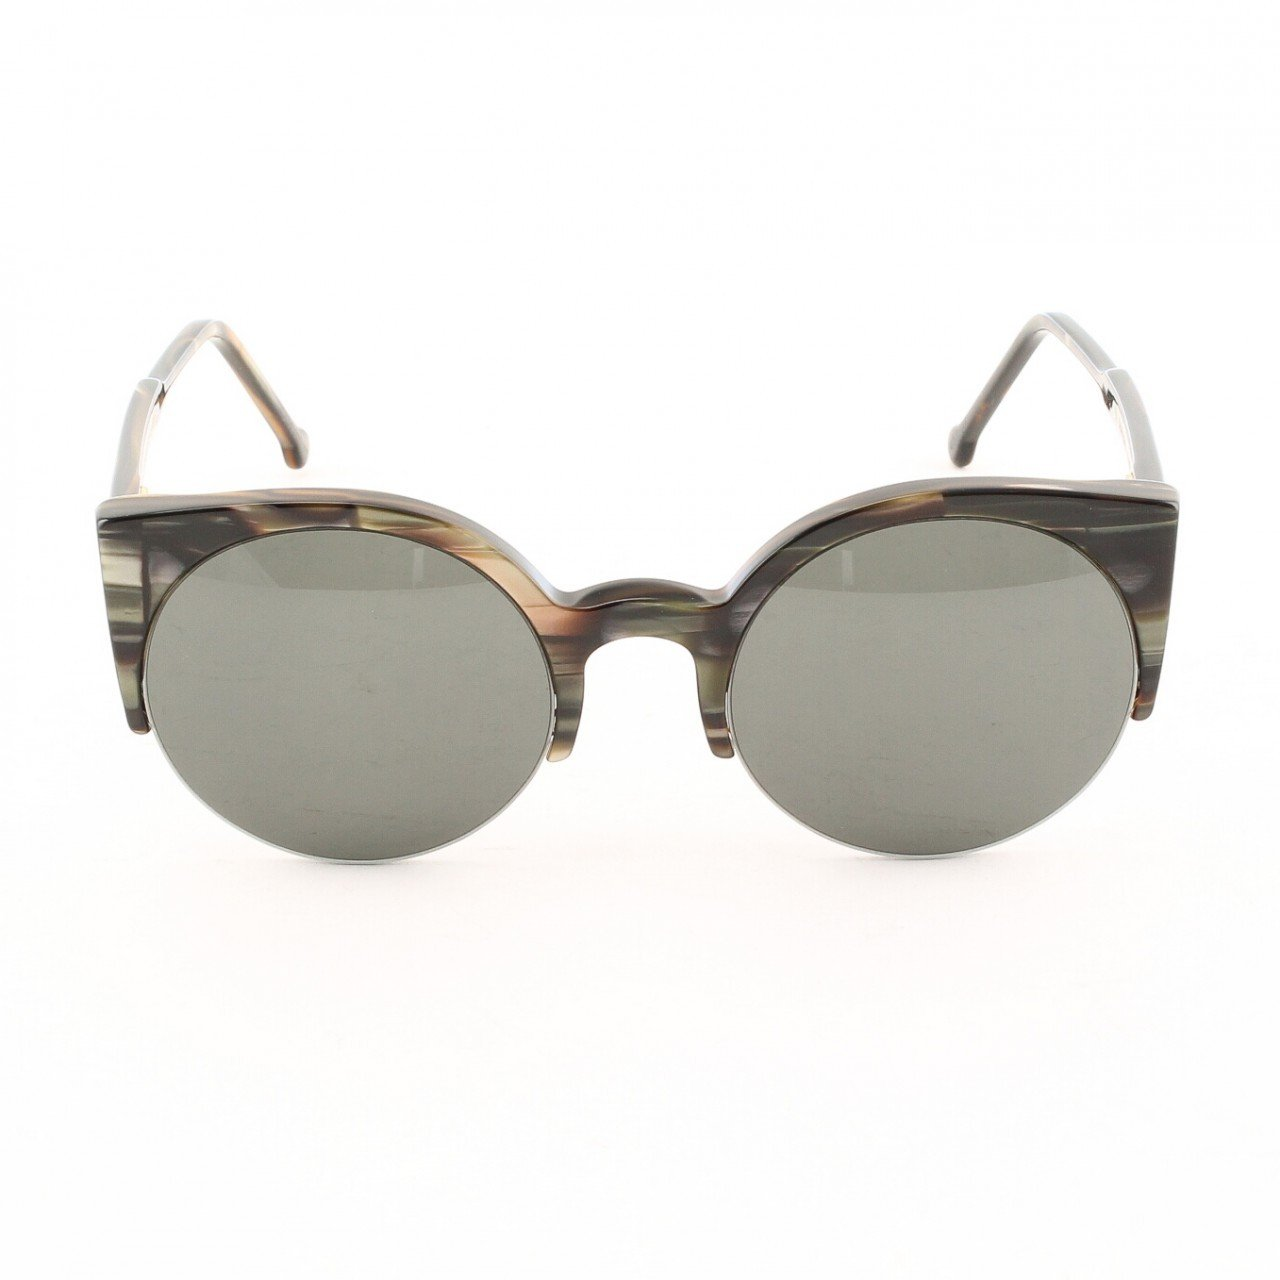 Super Lucia 407 Sunglasses Womens Psychedelic Horn with Grey Zeiss Lenses by RETROSUPERFUTURE